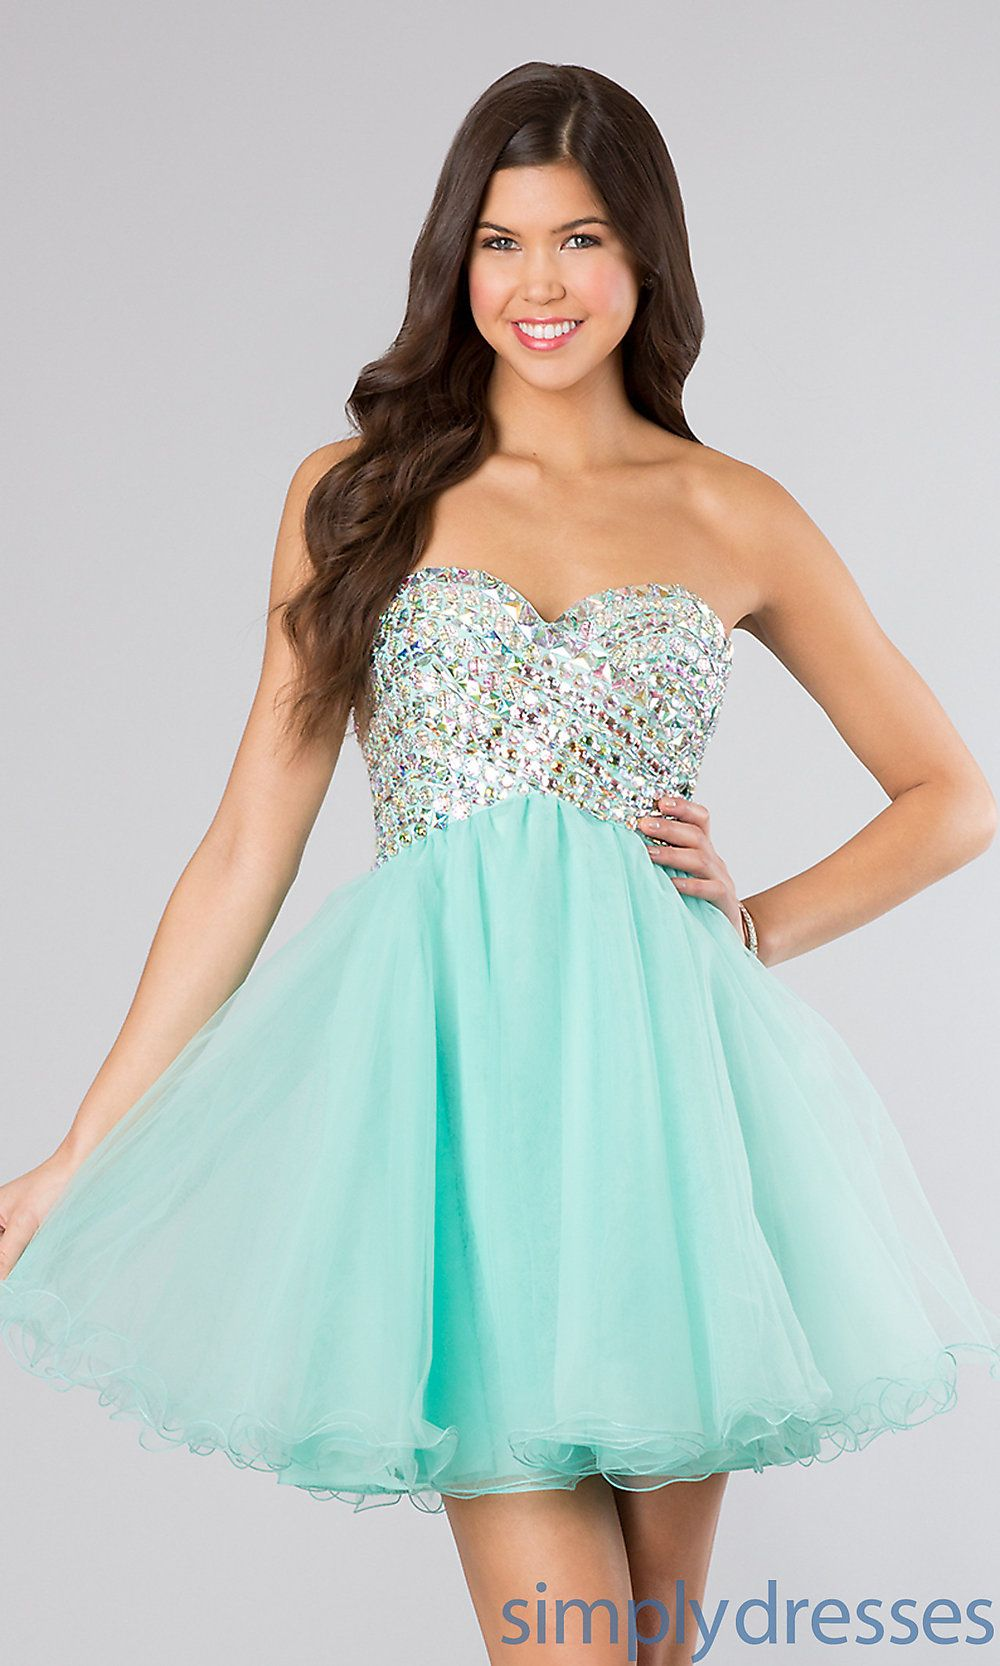 Sparkly Semi Formal Dresses for Teens